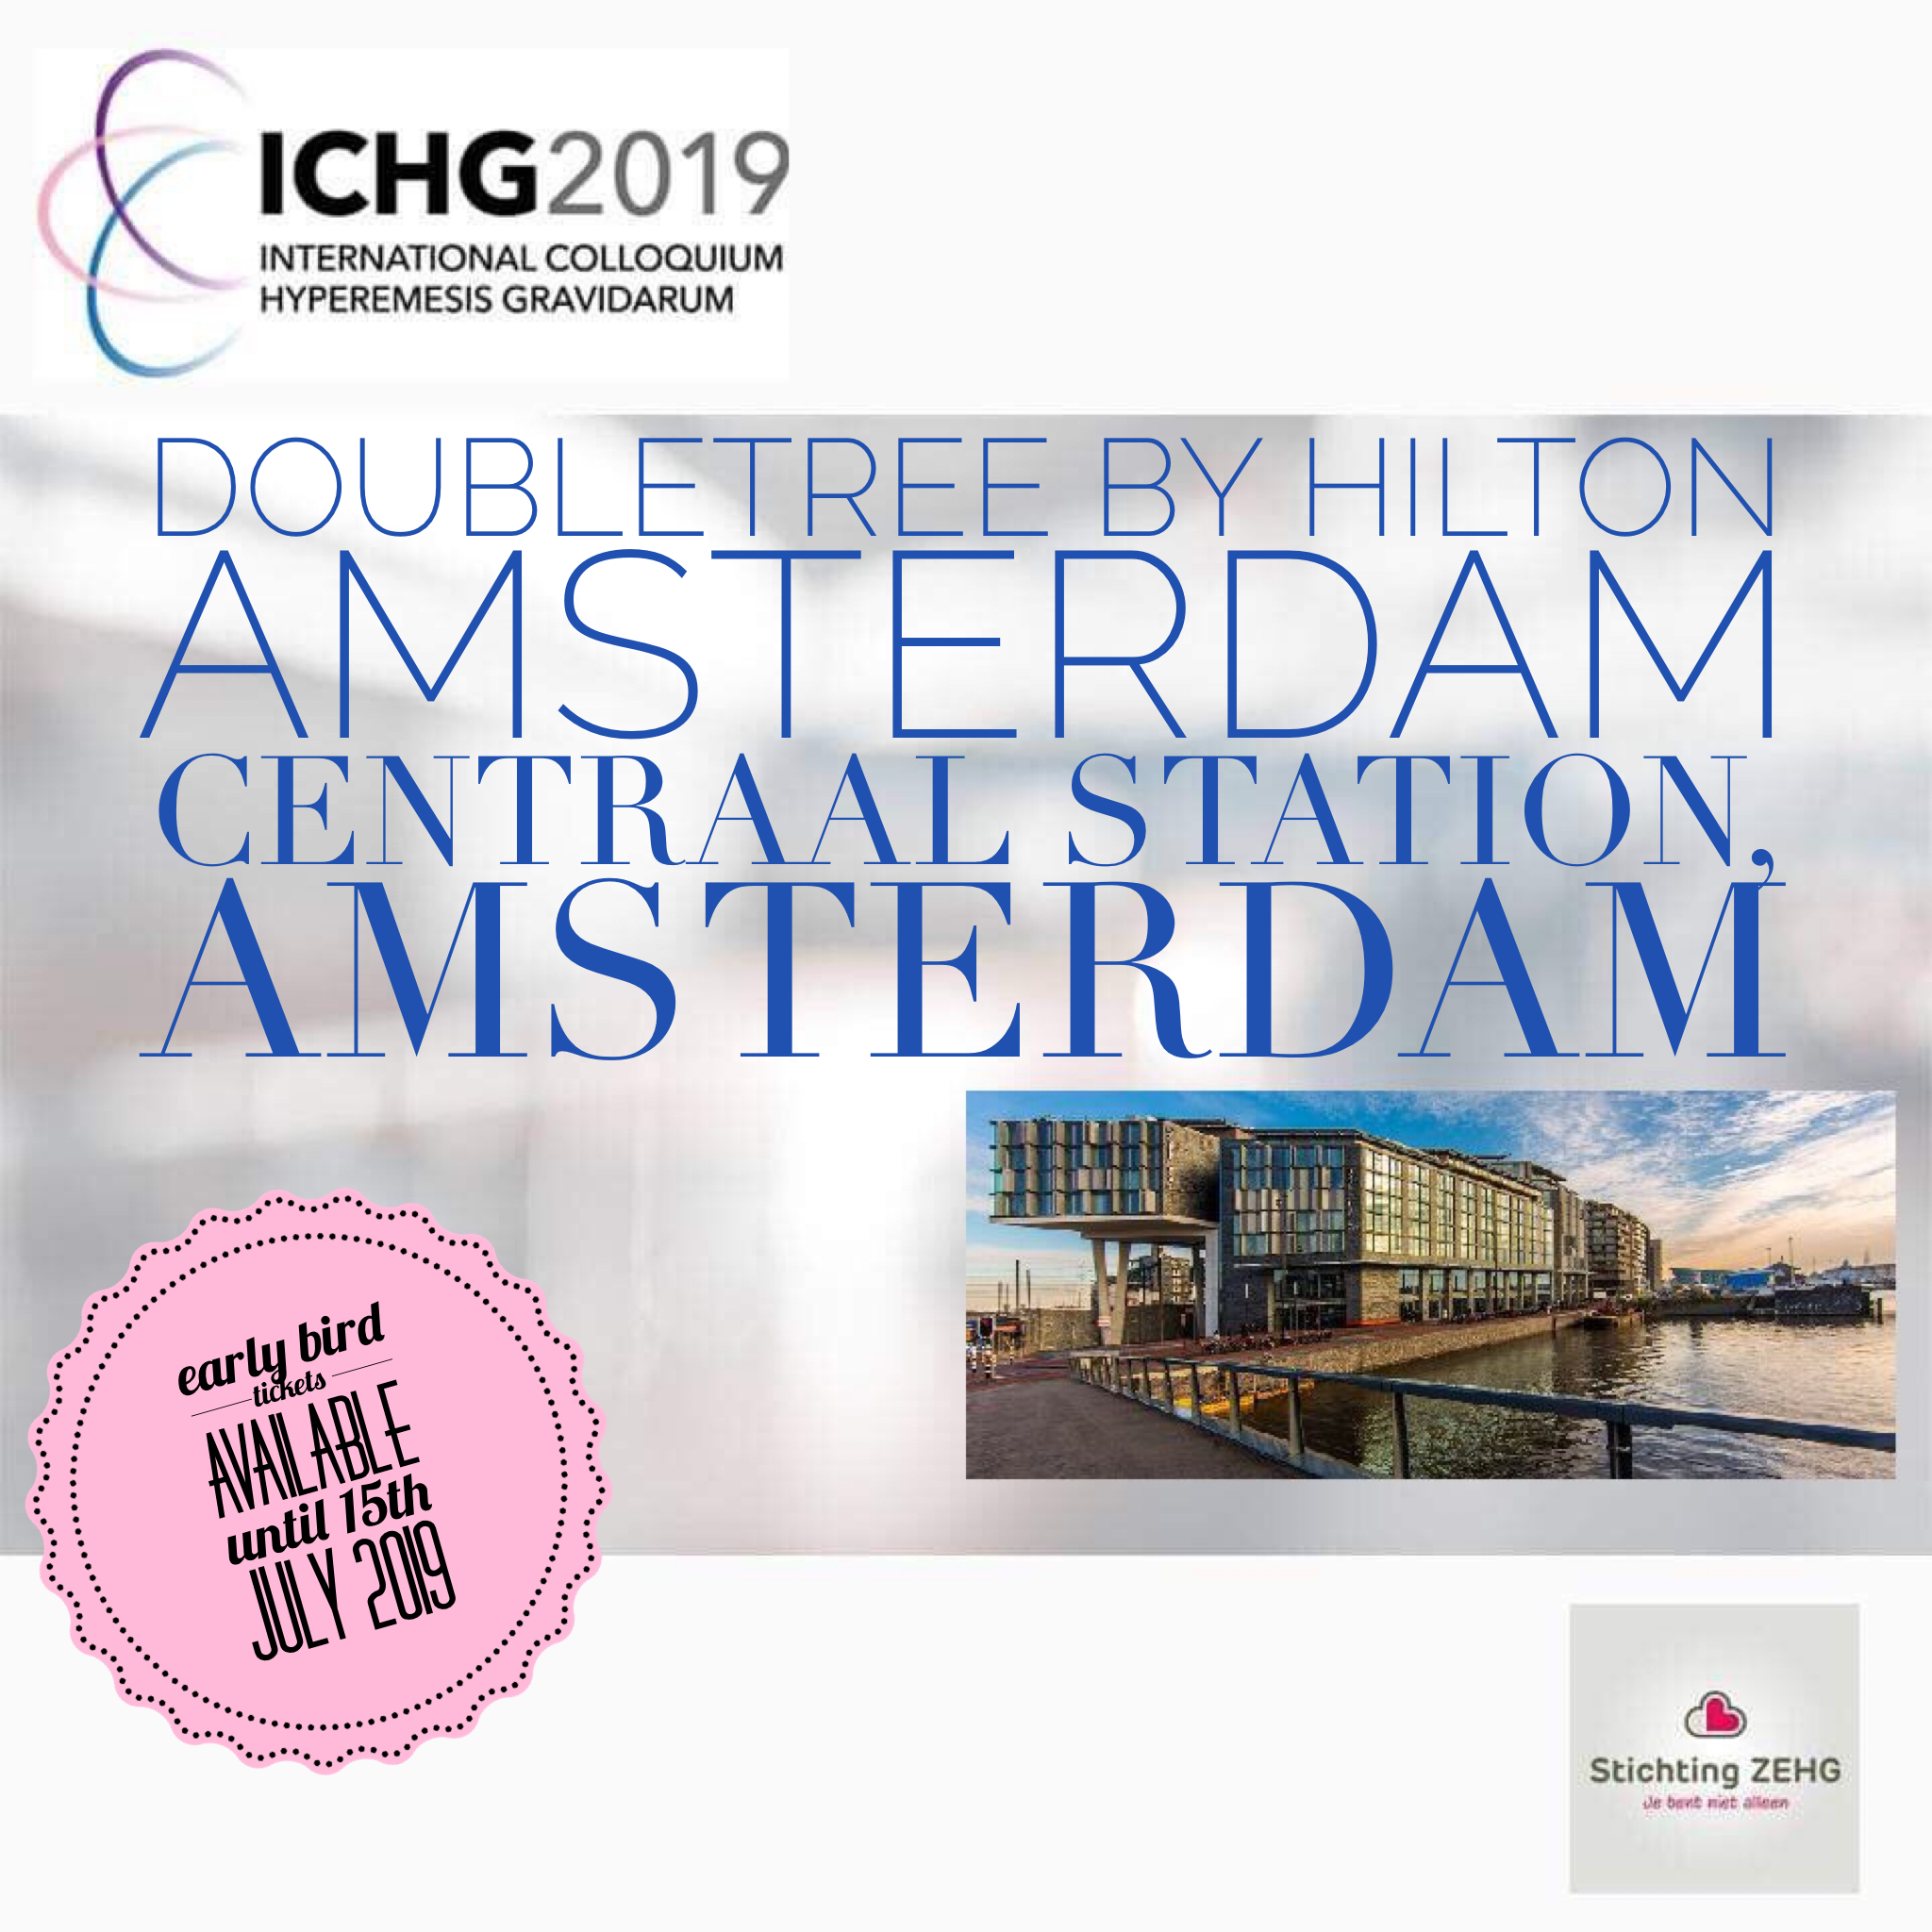 ICHG2019 Early Bird Tickets